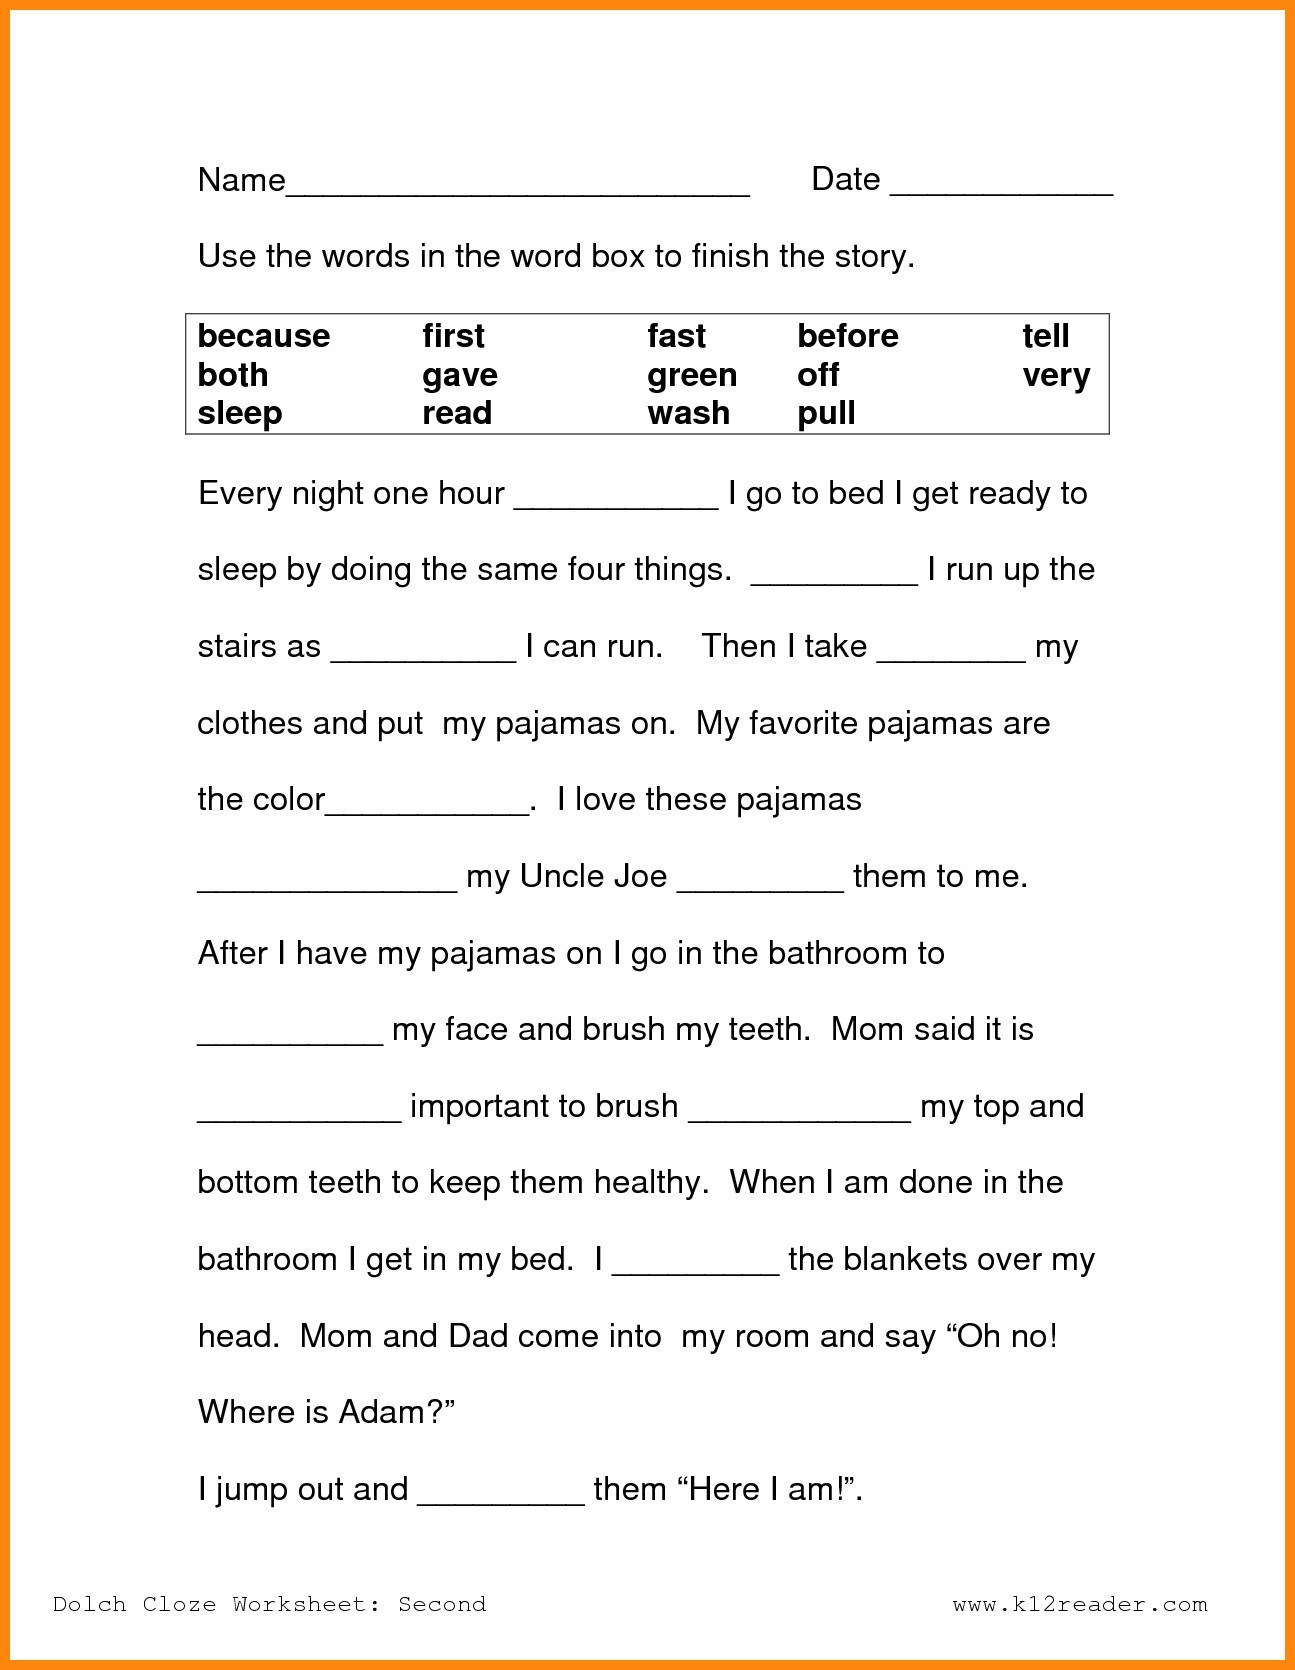 hight resolution of Dialogue Worksheet For 4th Grade   Printable Worksheets and Activities for  Teachers